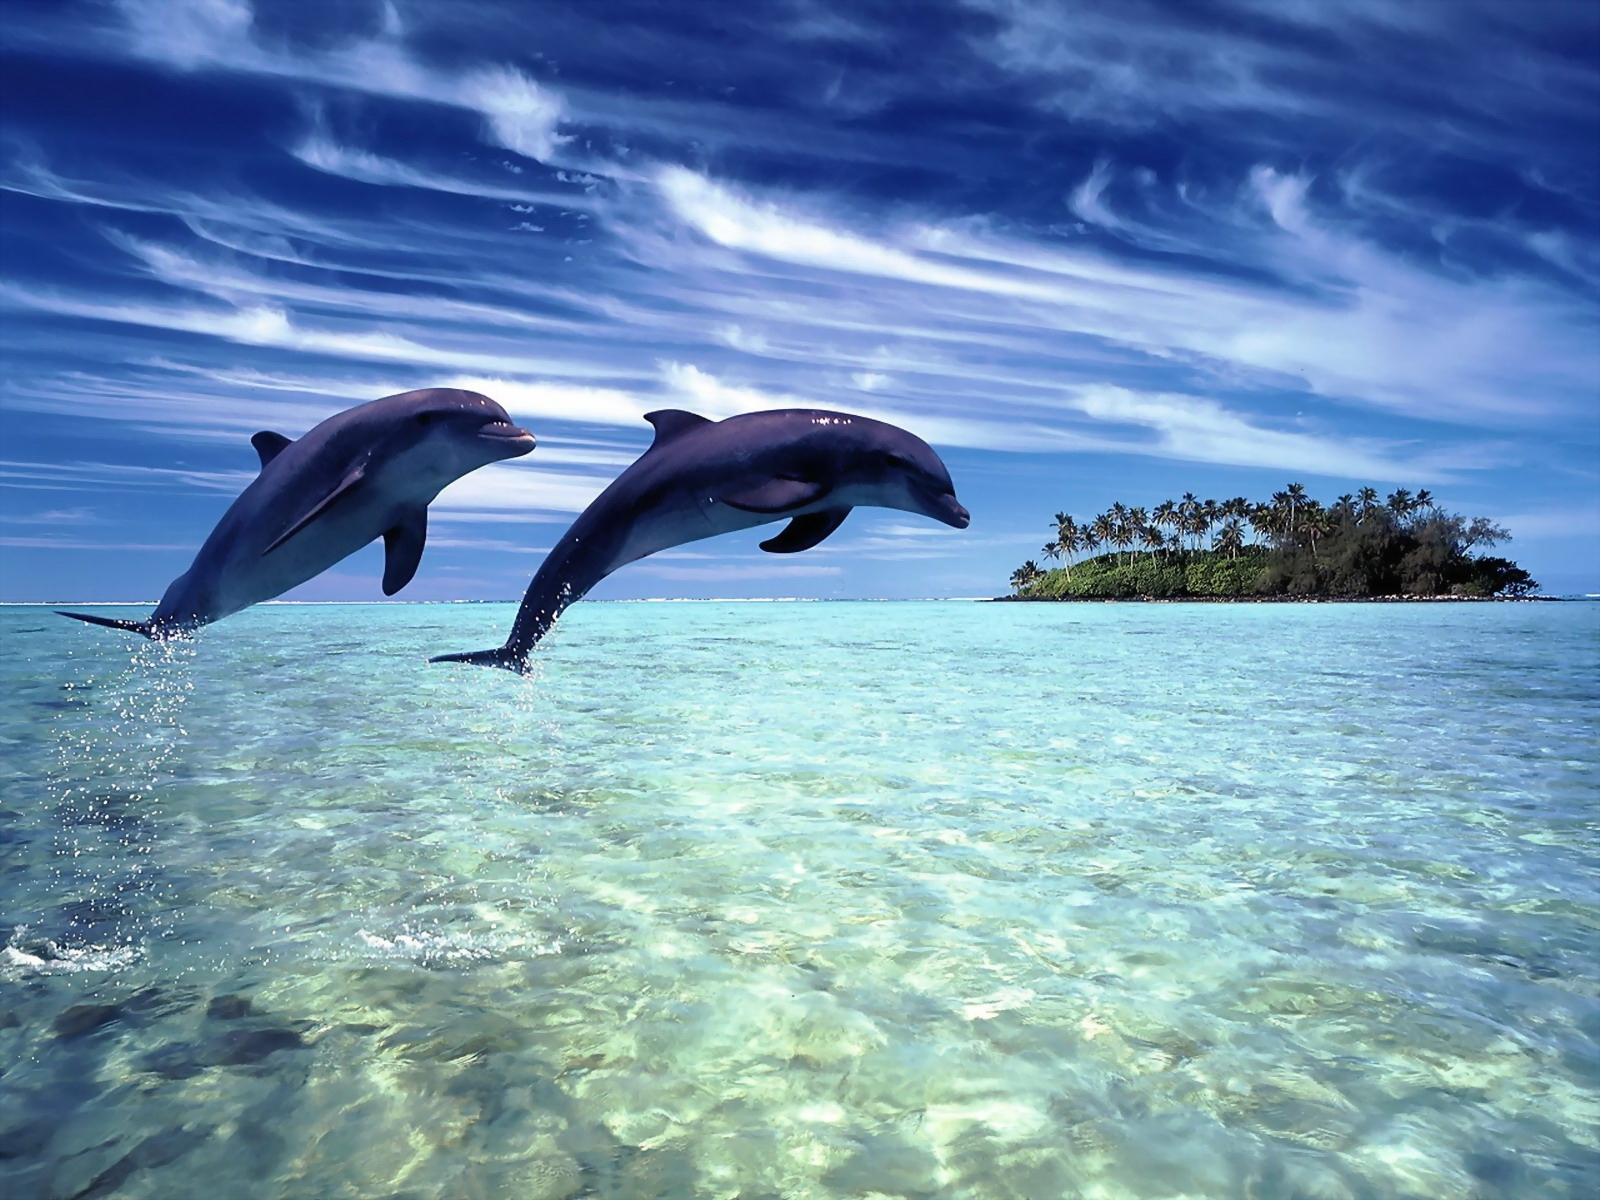 Dolphins Wallpaper Hd Desktop Wallpaper 1600x1200